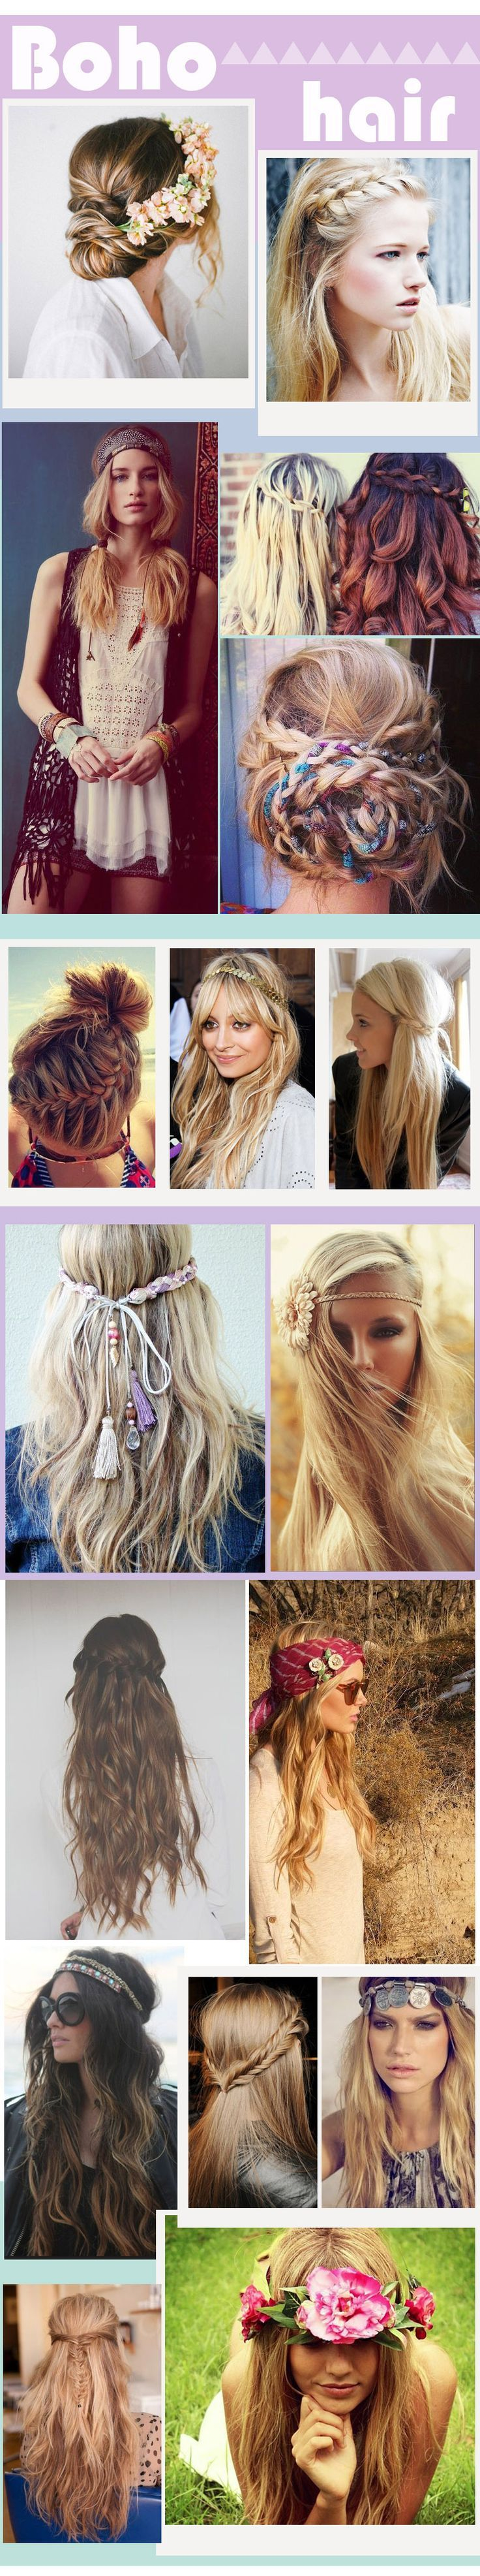 Boho hair styles, all day err day